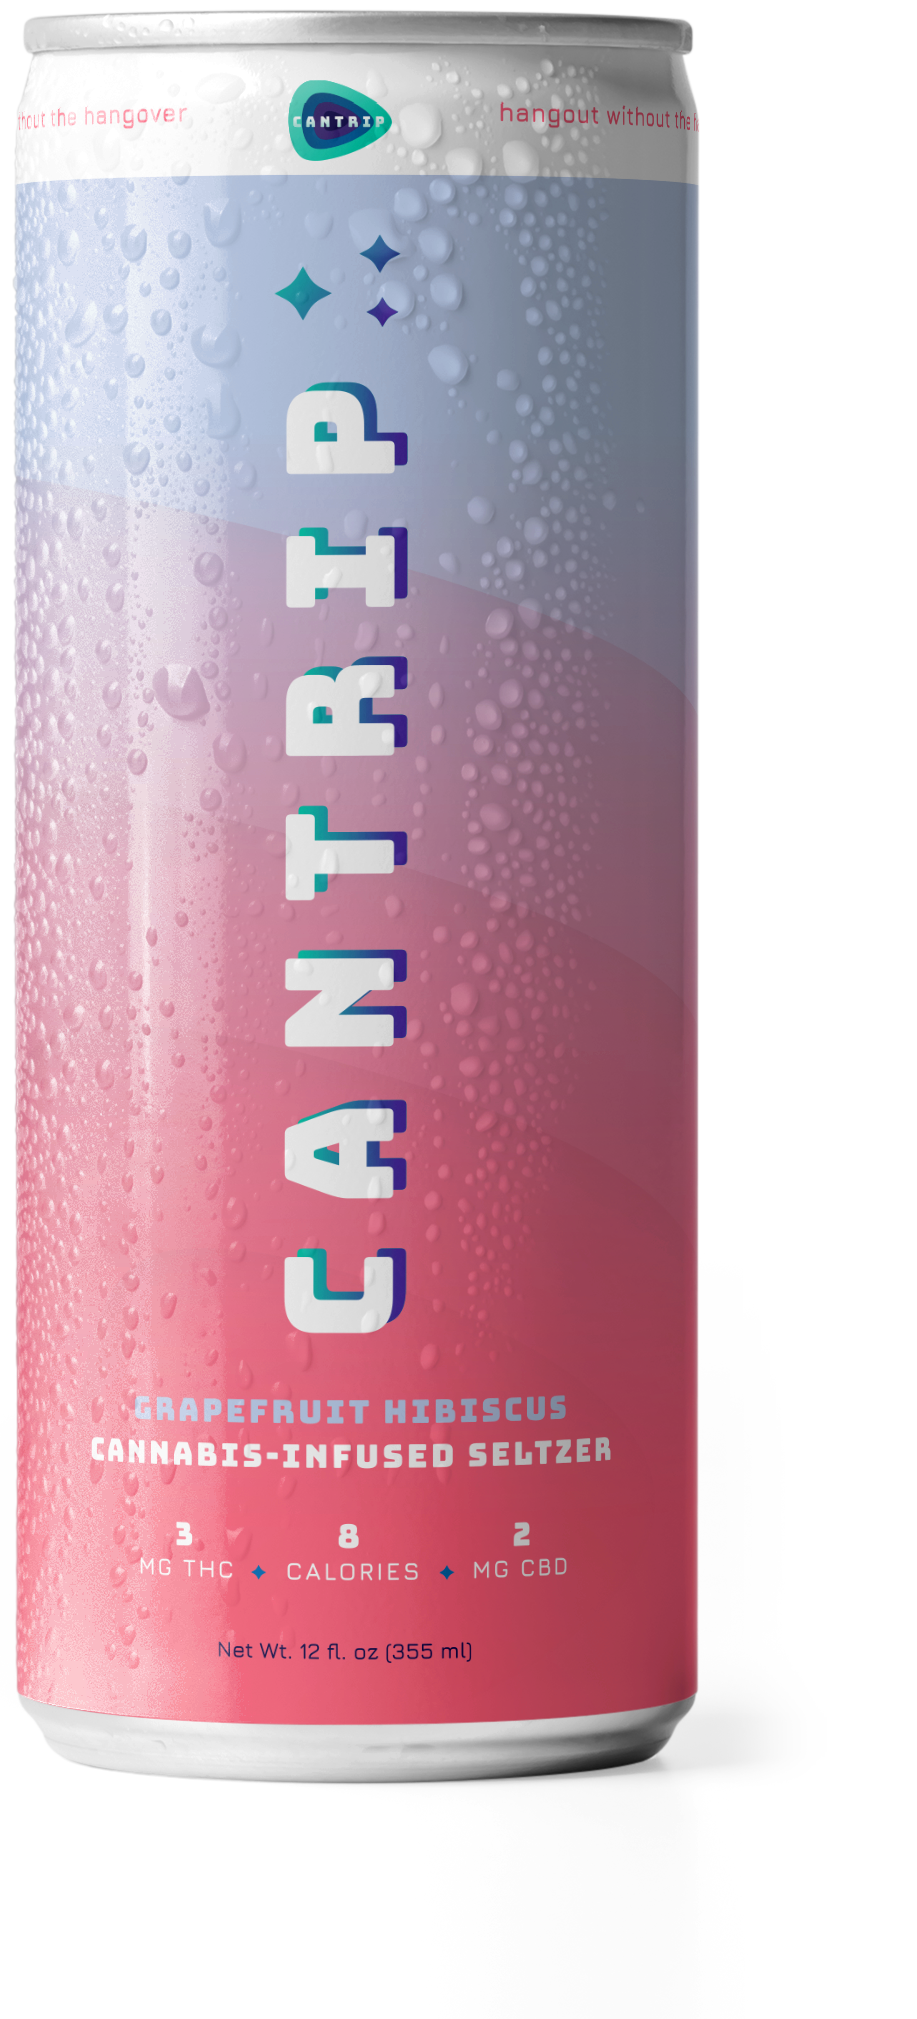 The Cantrip cannabis-infused seltzer Grapefruit Hibiscus can.